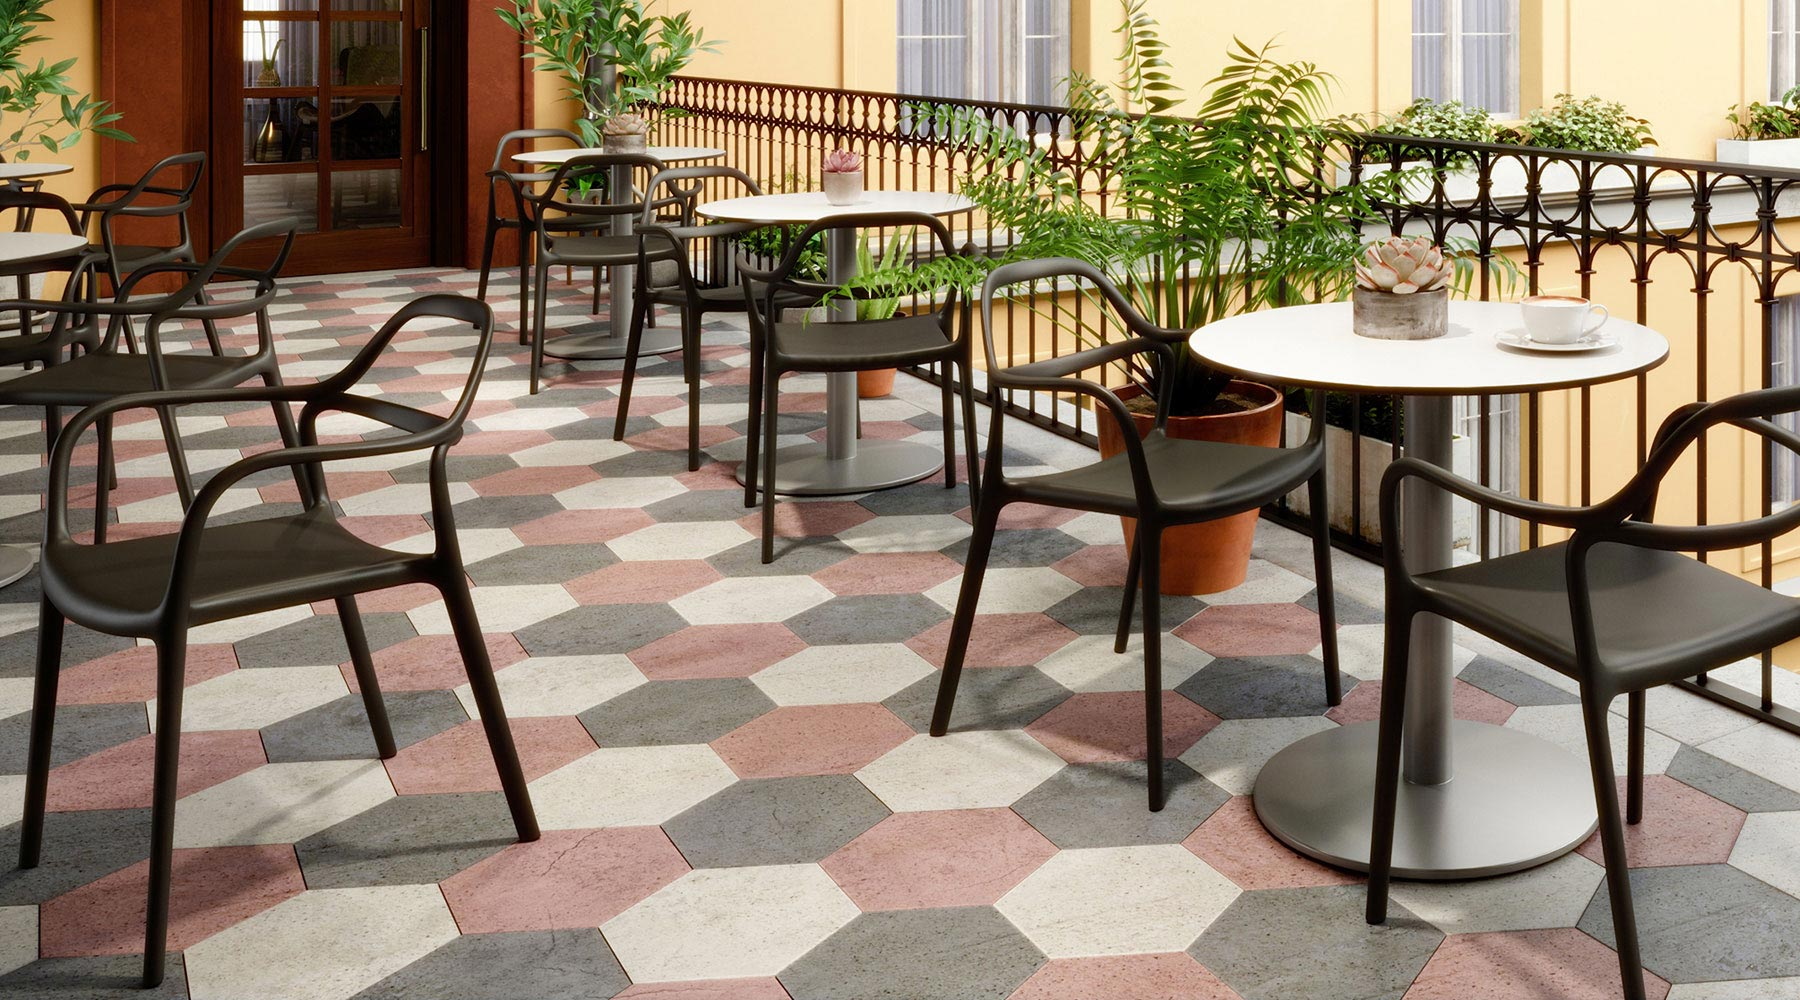 Express Yourself Indoor Outdoor Seating with Eveleen Tables